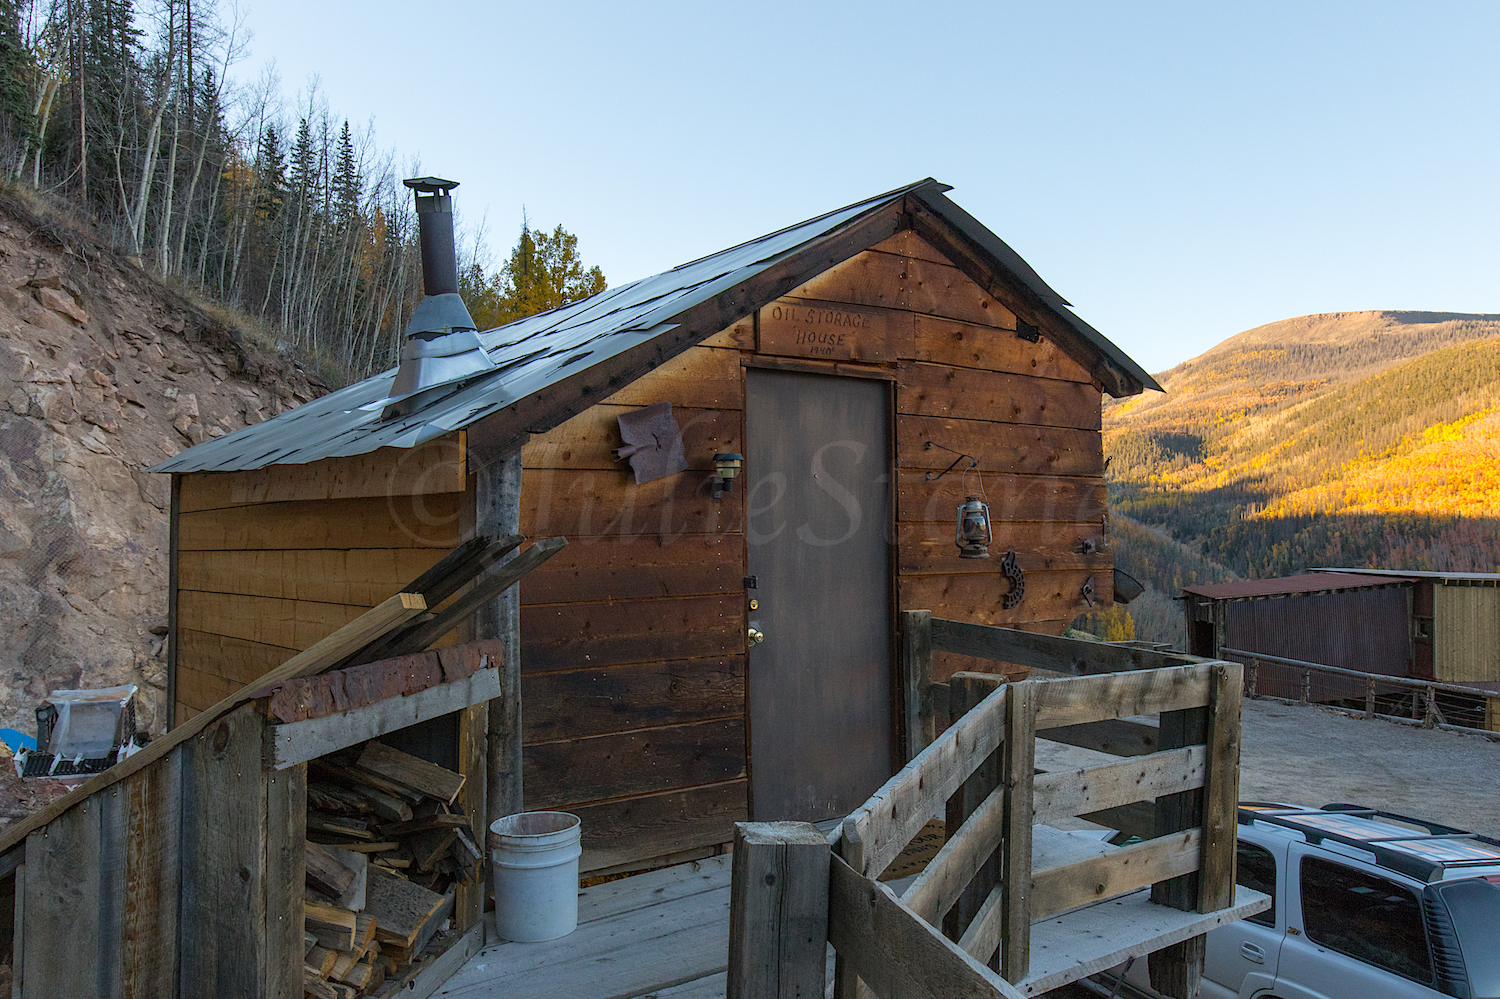 Old Miners Cabin and our home, Image # 4671